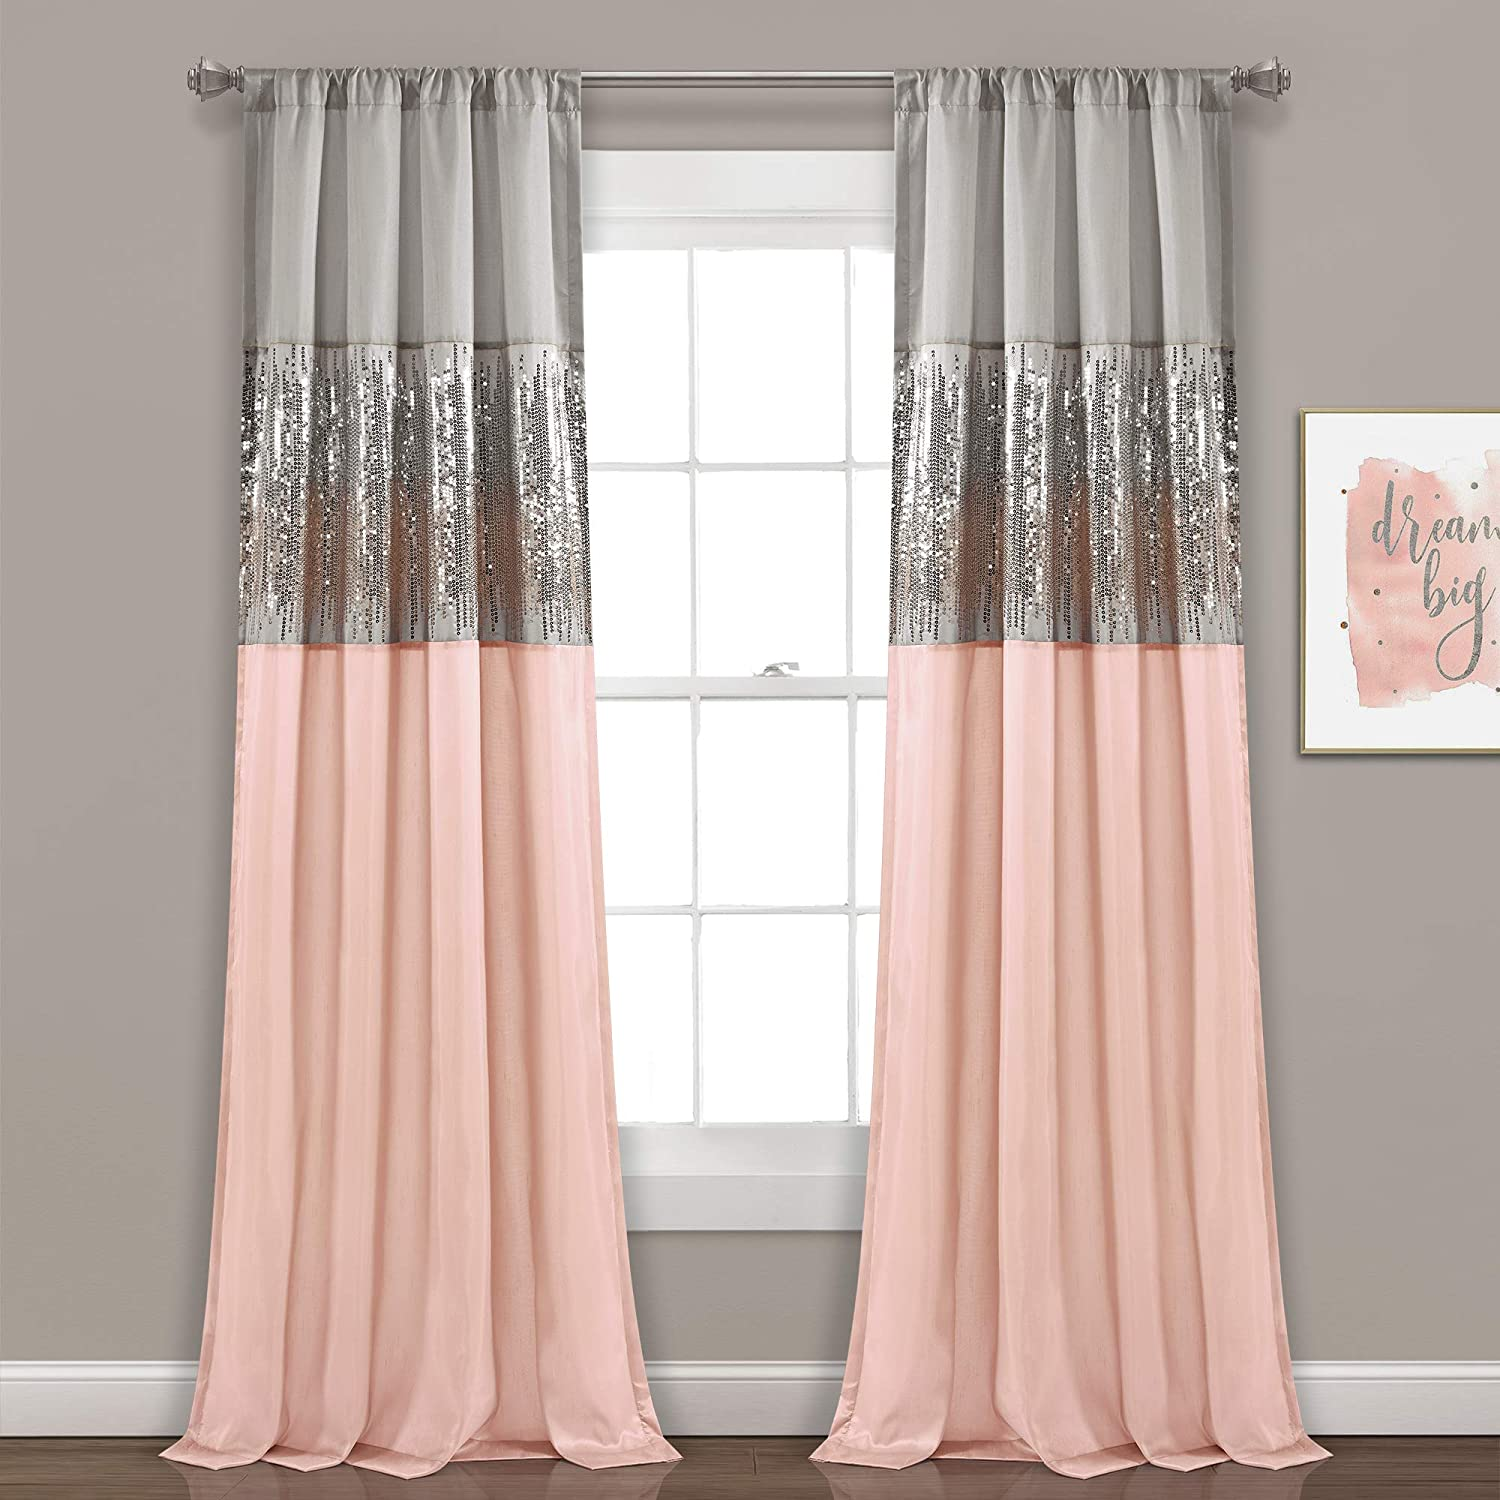 Amazon Com Lush Decor Gray And Blush Night Sky Panel For Living Bedroom Dining Room Single Curtain 84 X 42 Home Kitchen